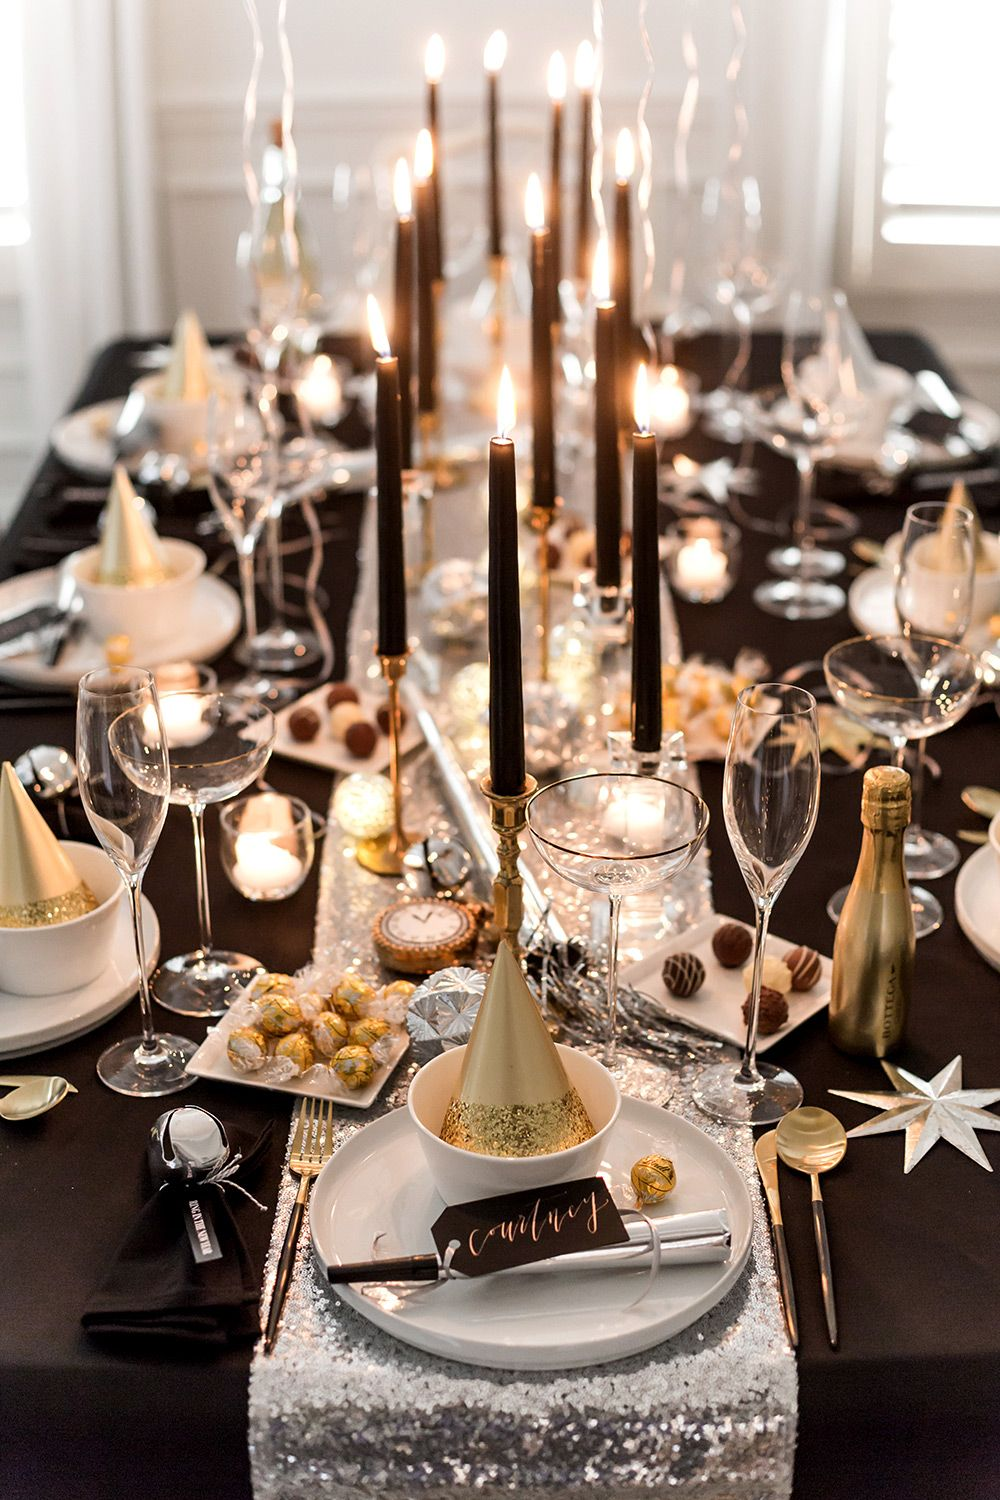 Ring in the New Year with style by hosting your own glitz